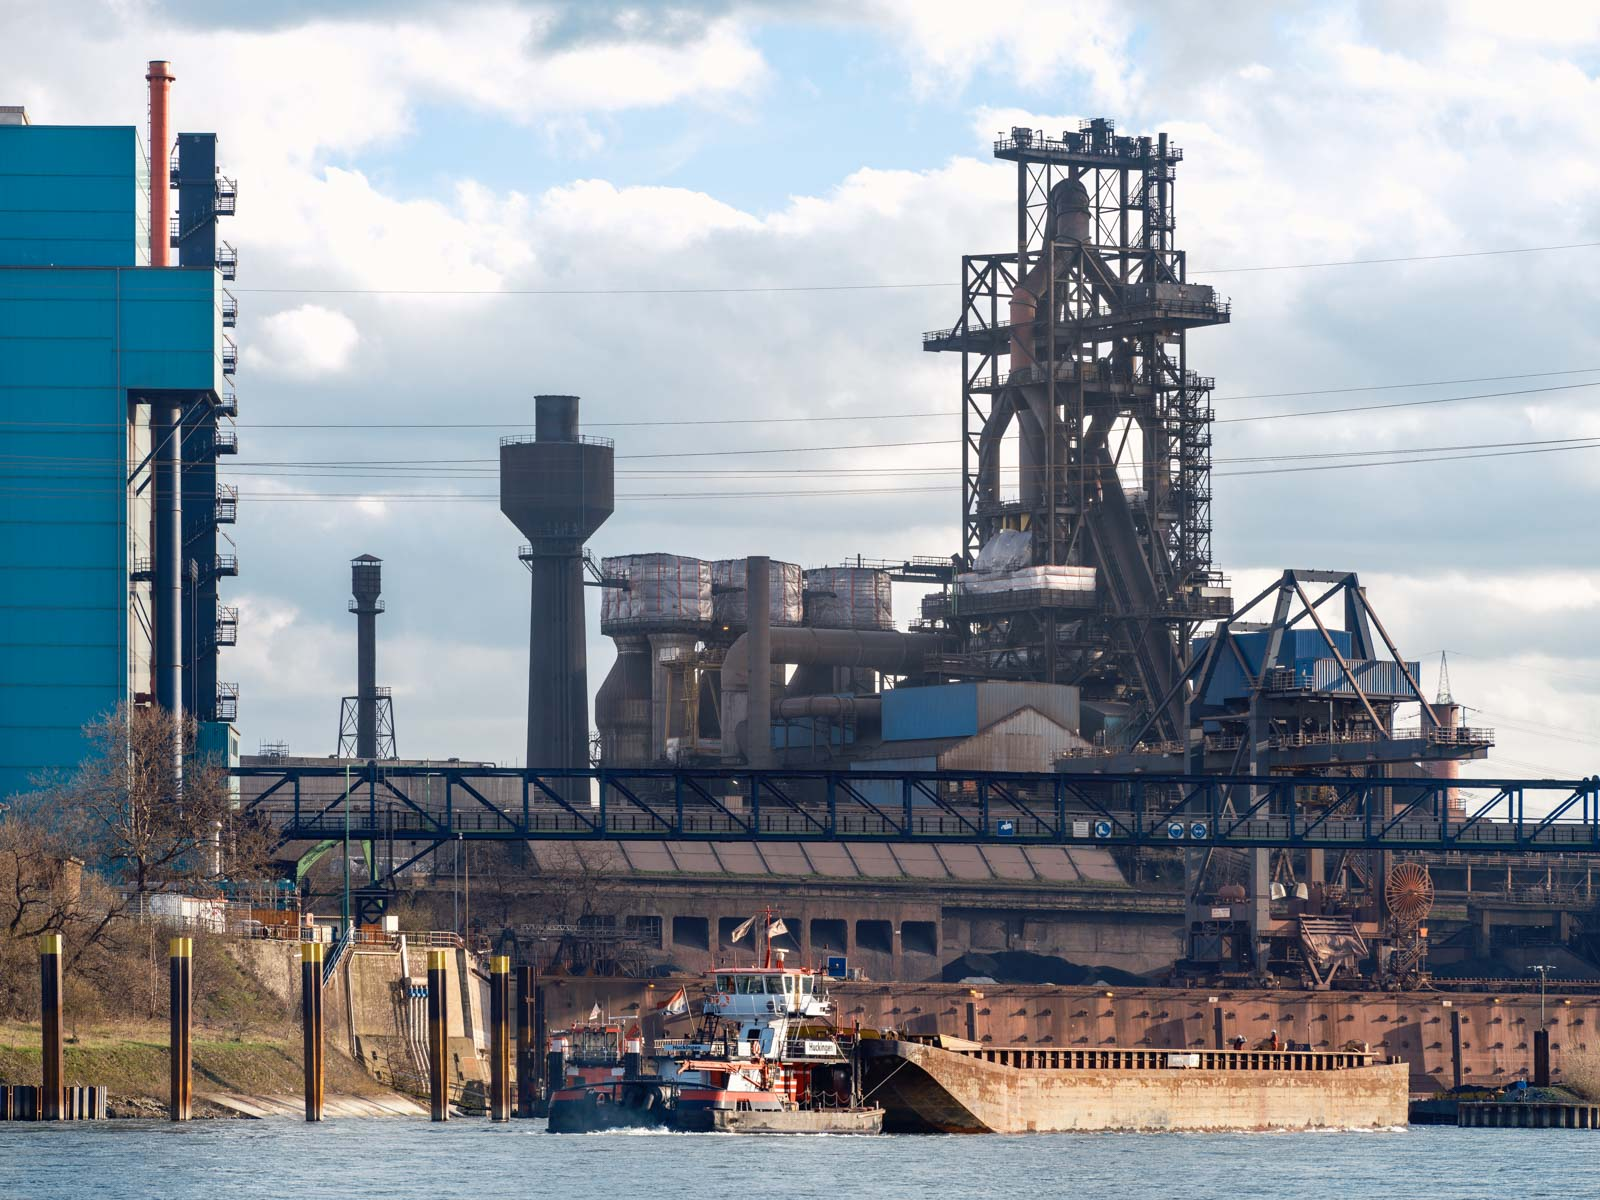 Port and blast furnace at Krupp Mannesmann steelworks (HKM) in Duisburg on the Rhine in the late afternoon in March 2021 (Germany).